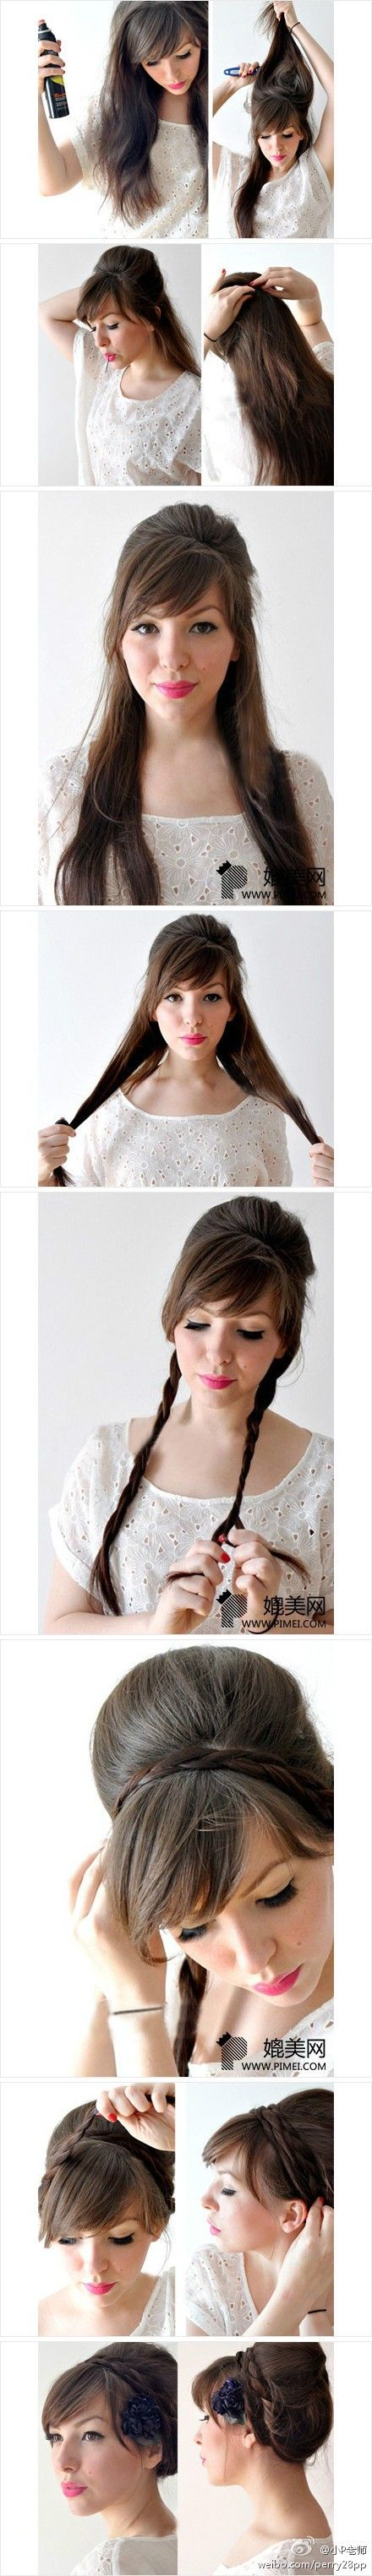 How To Do An Easy Pretty Up Do Hairstyle With Your Hair - Beauty Tutorials: Hair Ideas, Up Dos, Beautiful Tutorials, Long Hair, Longer Hair, Hair Style, Braids Headbands, Updo, Cute Hairstyles